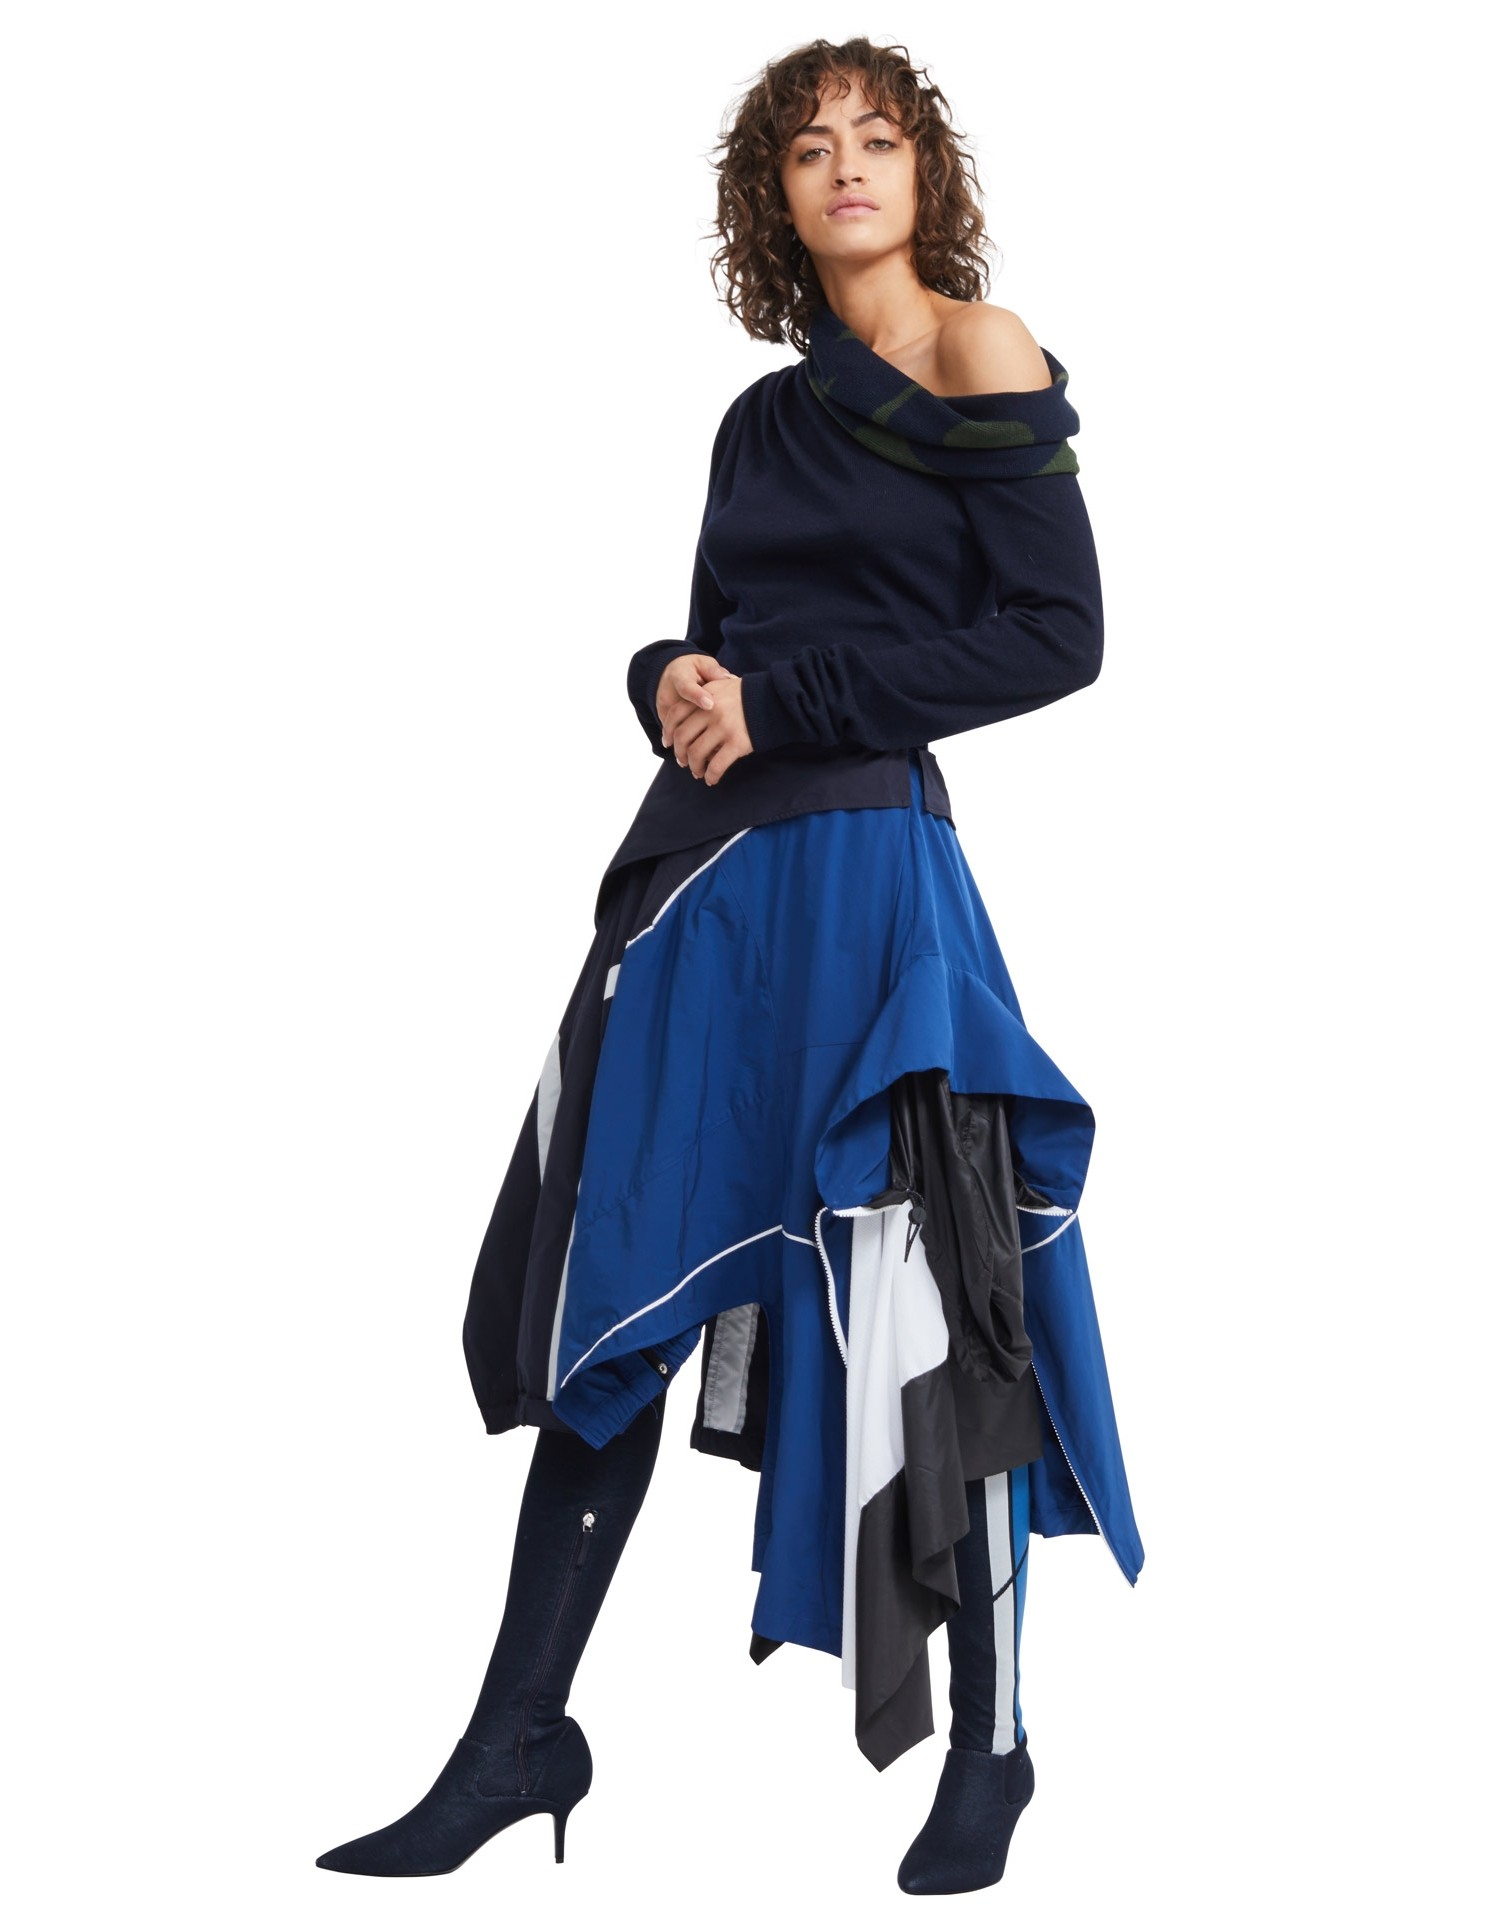 MONSE Windbreaker Skirt on Model Front View